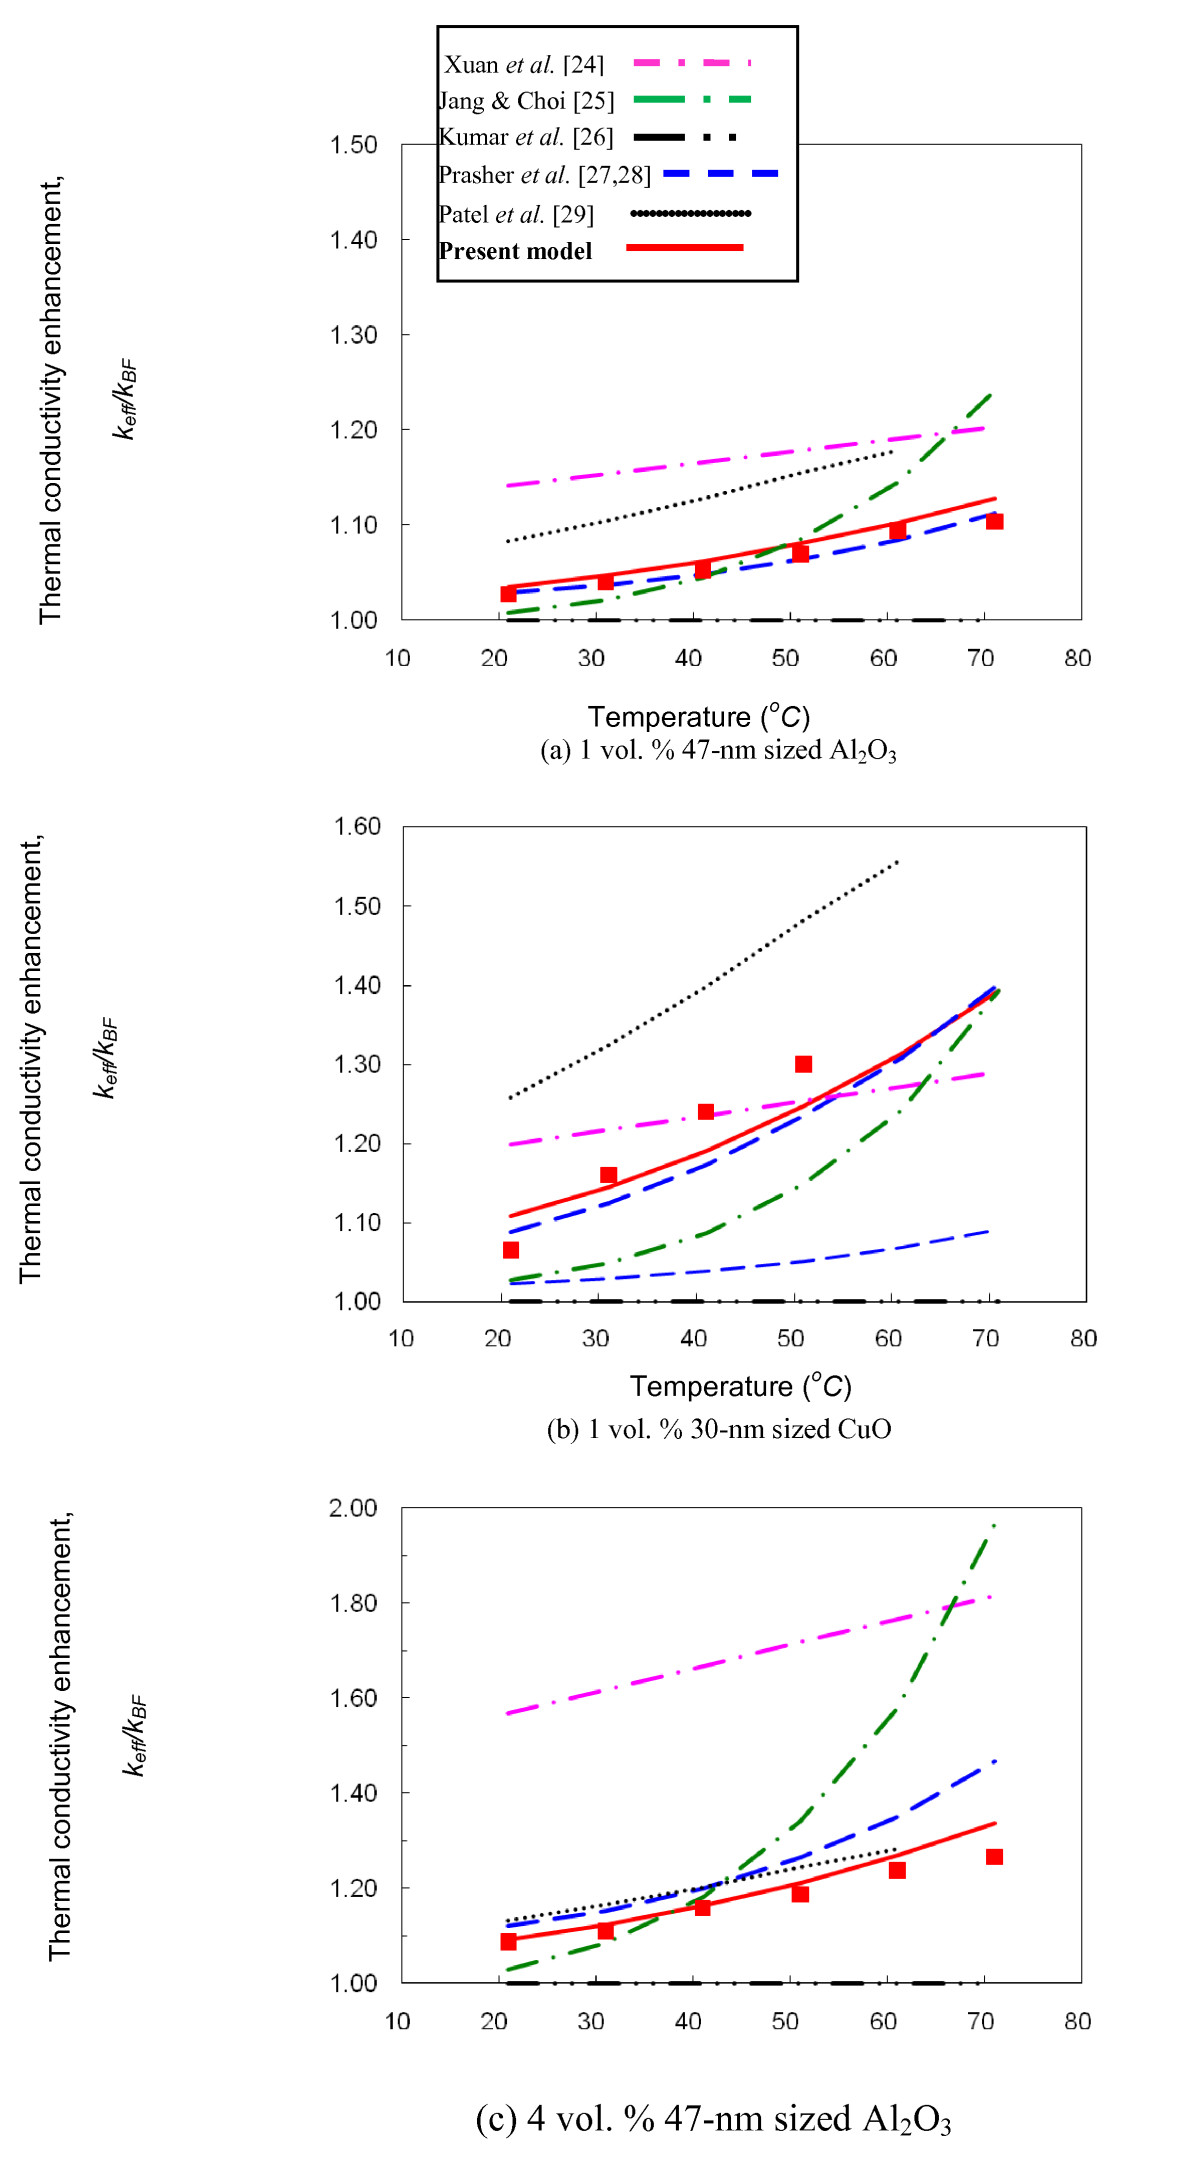 http://static-content.springer.com/image/art%3A10.1186%2F1556-276X-6-361/MediaObjects/11671_2010_Article_477_Fig2_HTML.jpg